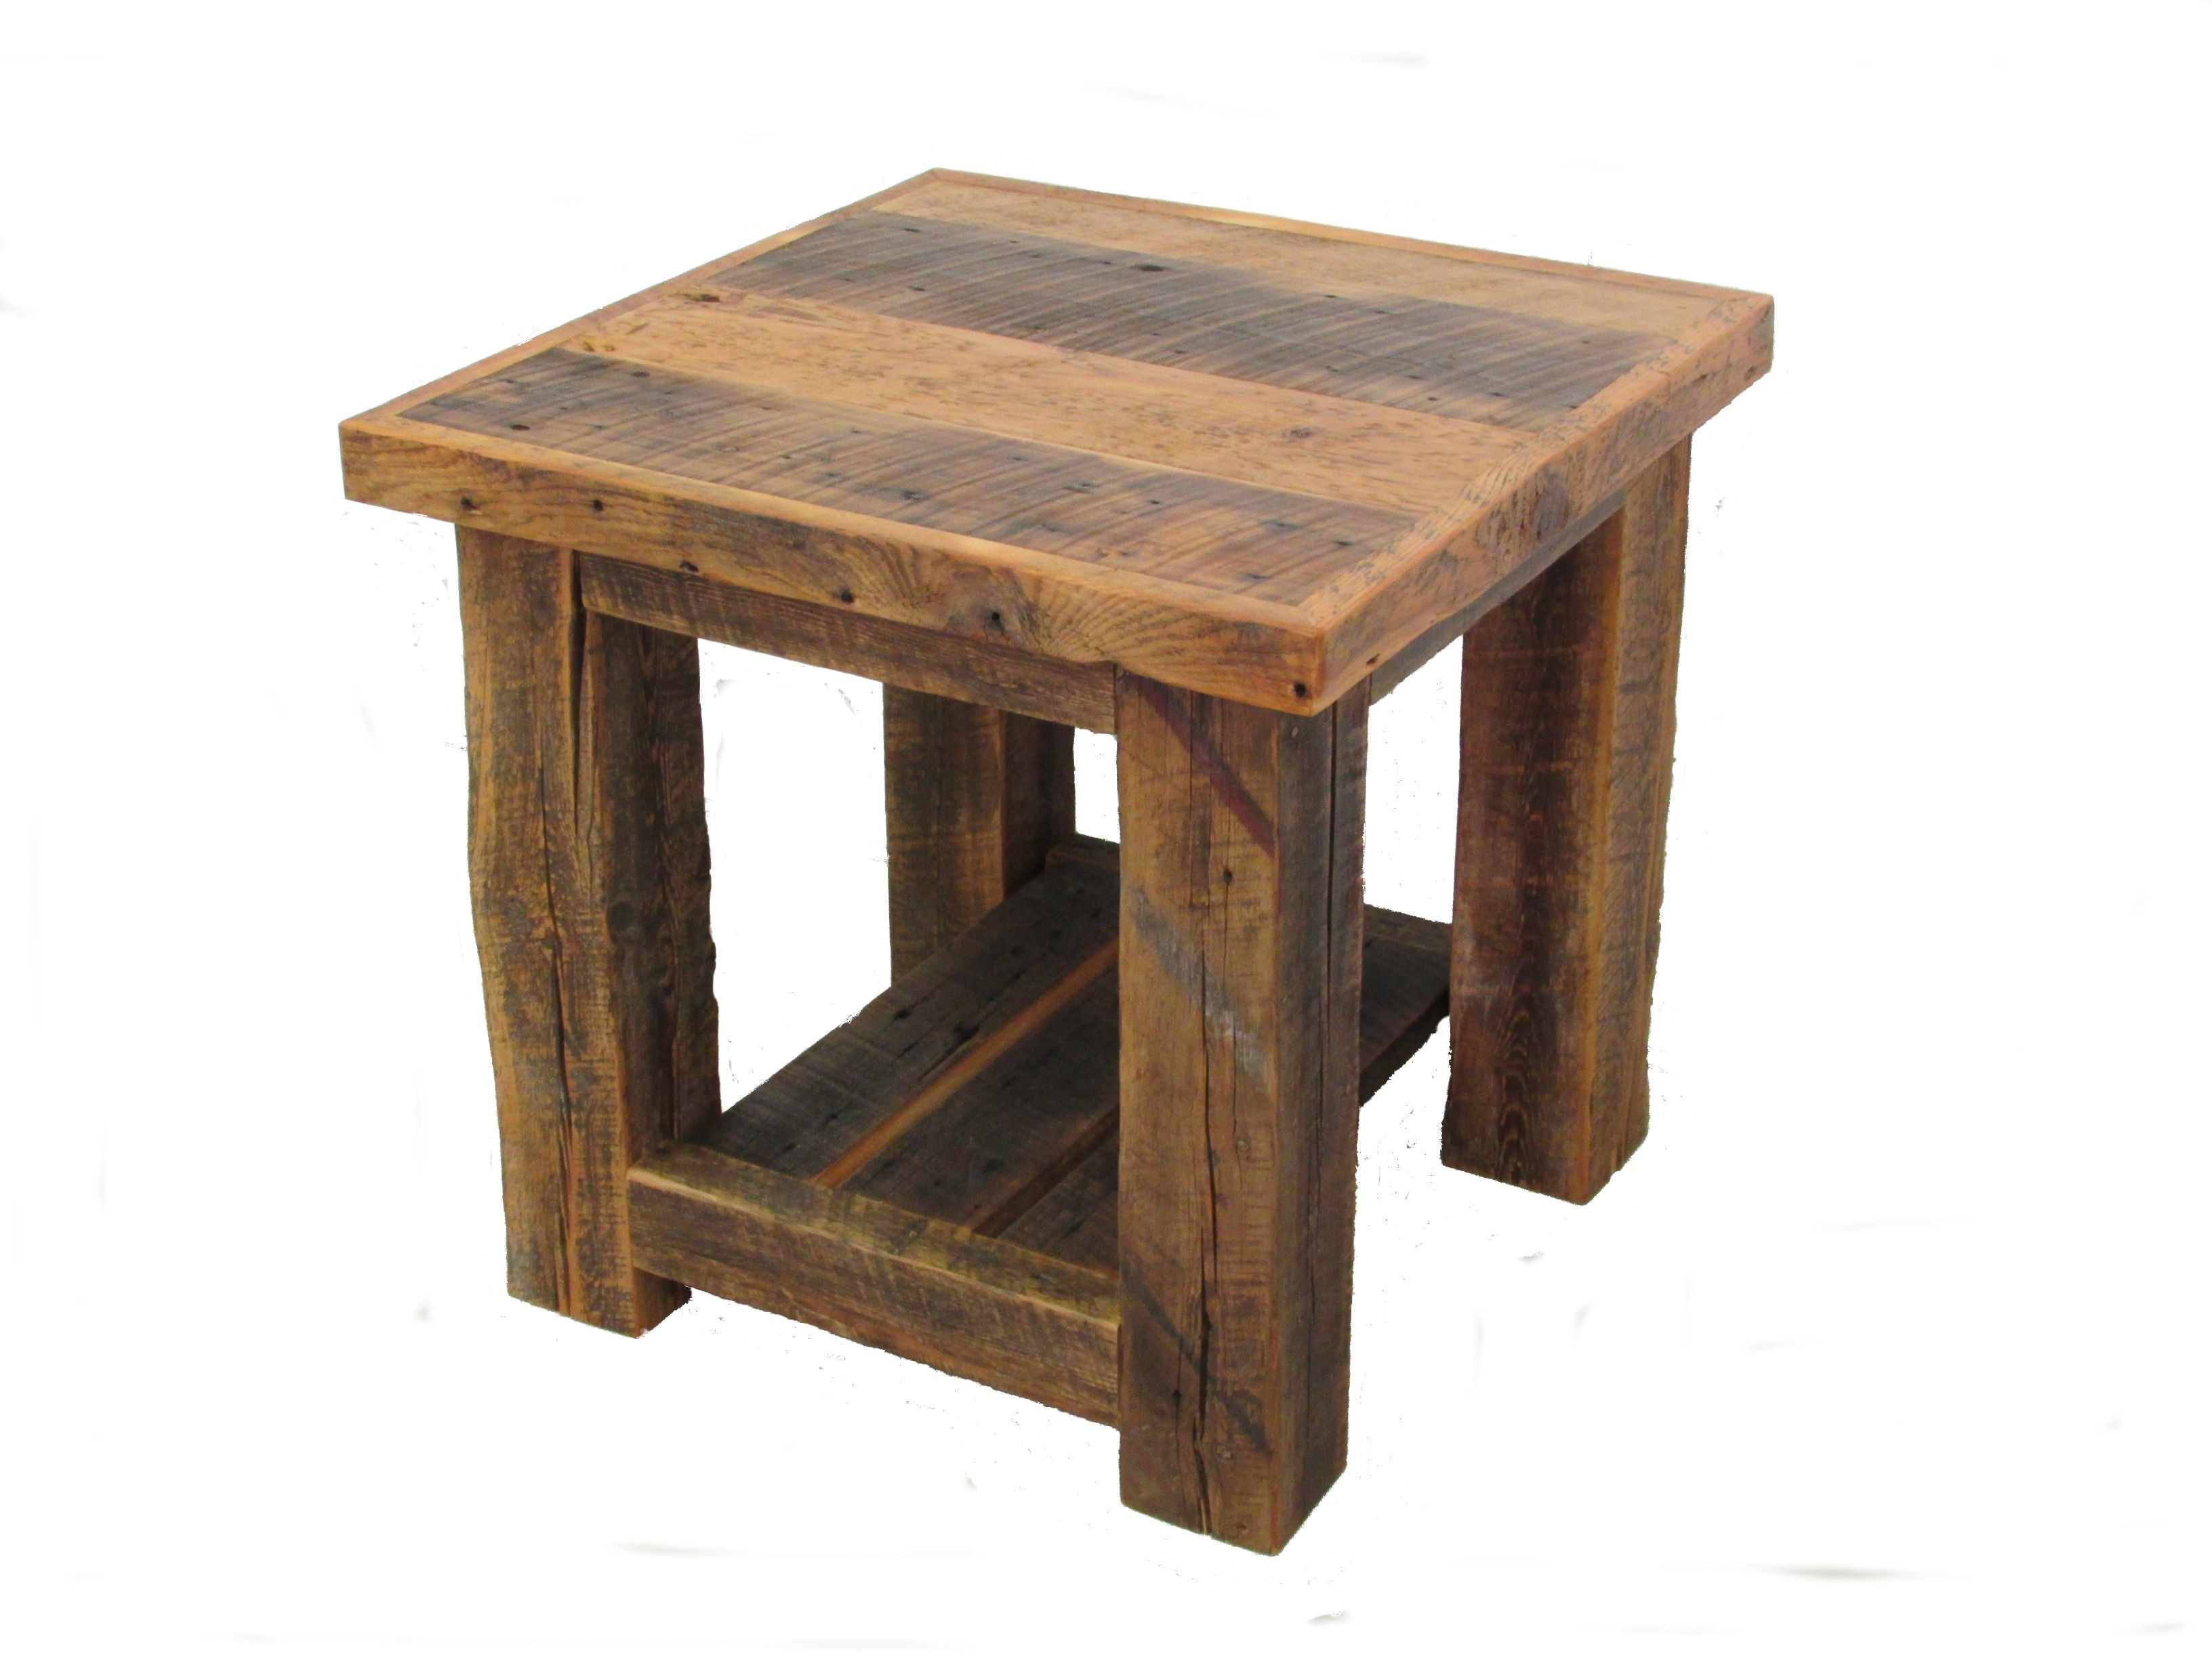 the fantastic round metal wood end tables jockboymusic reclaimed barn post table white cedar barnwood clipped nest coffee console and set light gray nightstand glass design oak